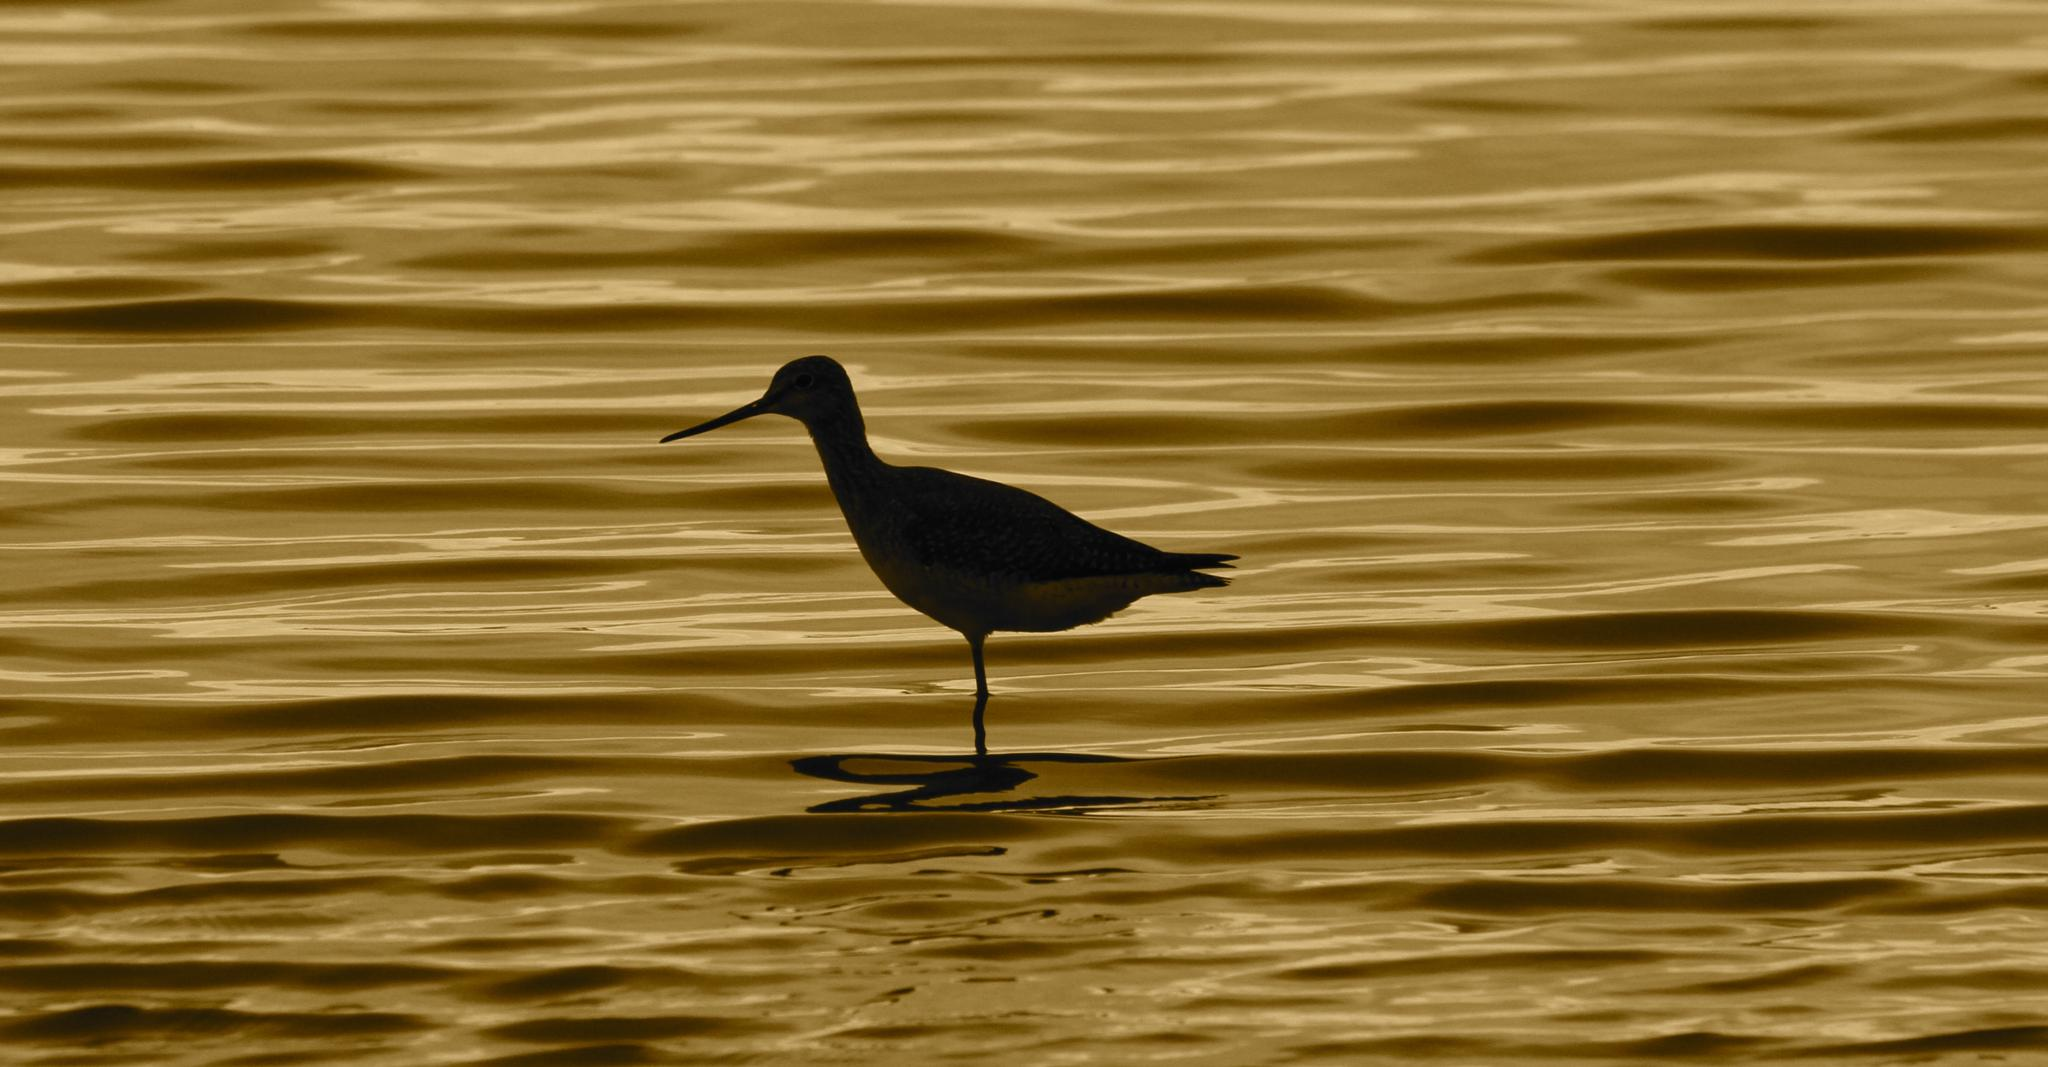 Bird on the water by andy.brook.18